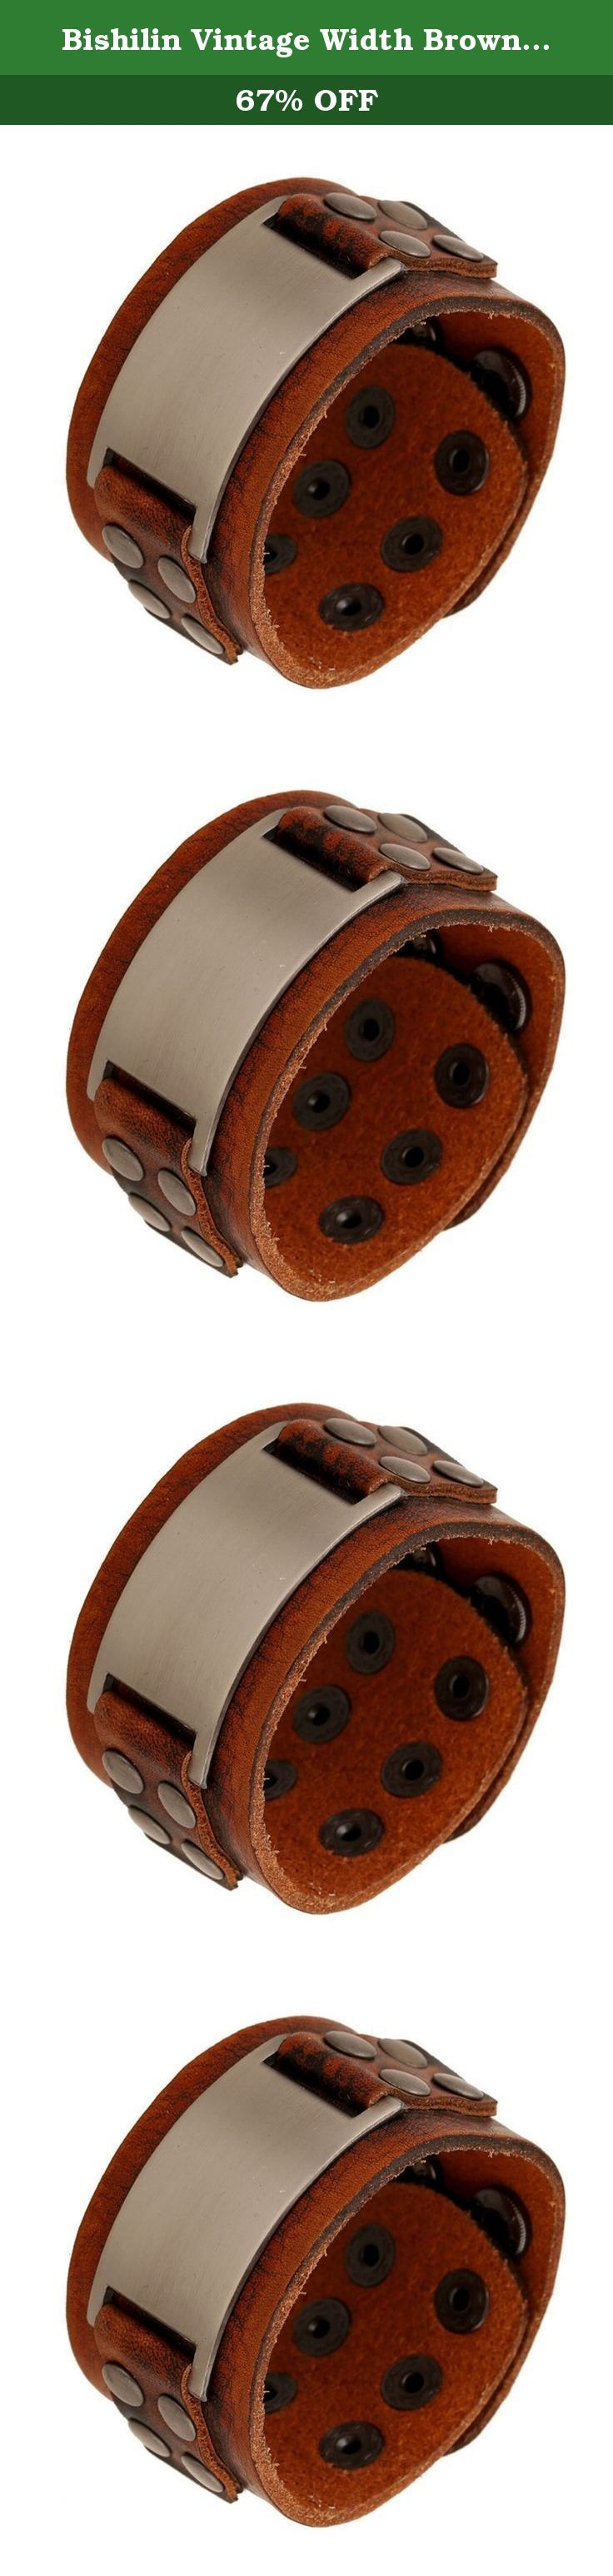 Bishilin Vintage Width Brown Leather Cuff Wrap Bangle Bracelets. Shipping: 1. Item will be shipped out within 3 days after payment is received. If you have other request, please contact us in 24 hours when clear payment. 2. Order will be shipped to you by the address which your leave on Amazon. Please make sure you address is right. 3. If you do not receive your order after Estimated Delivery Date, please contact us. We will track the shipment and get back to you as soon as possible with…